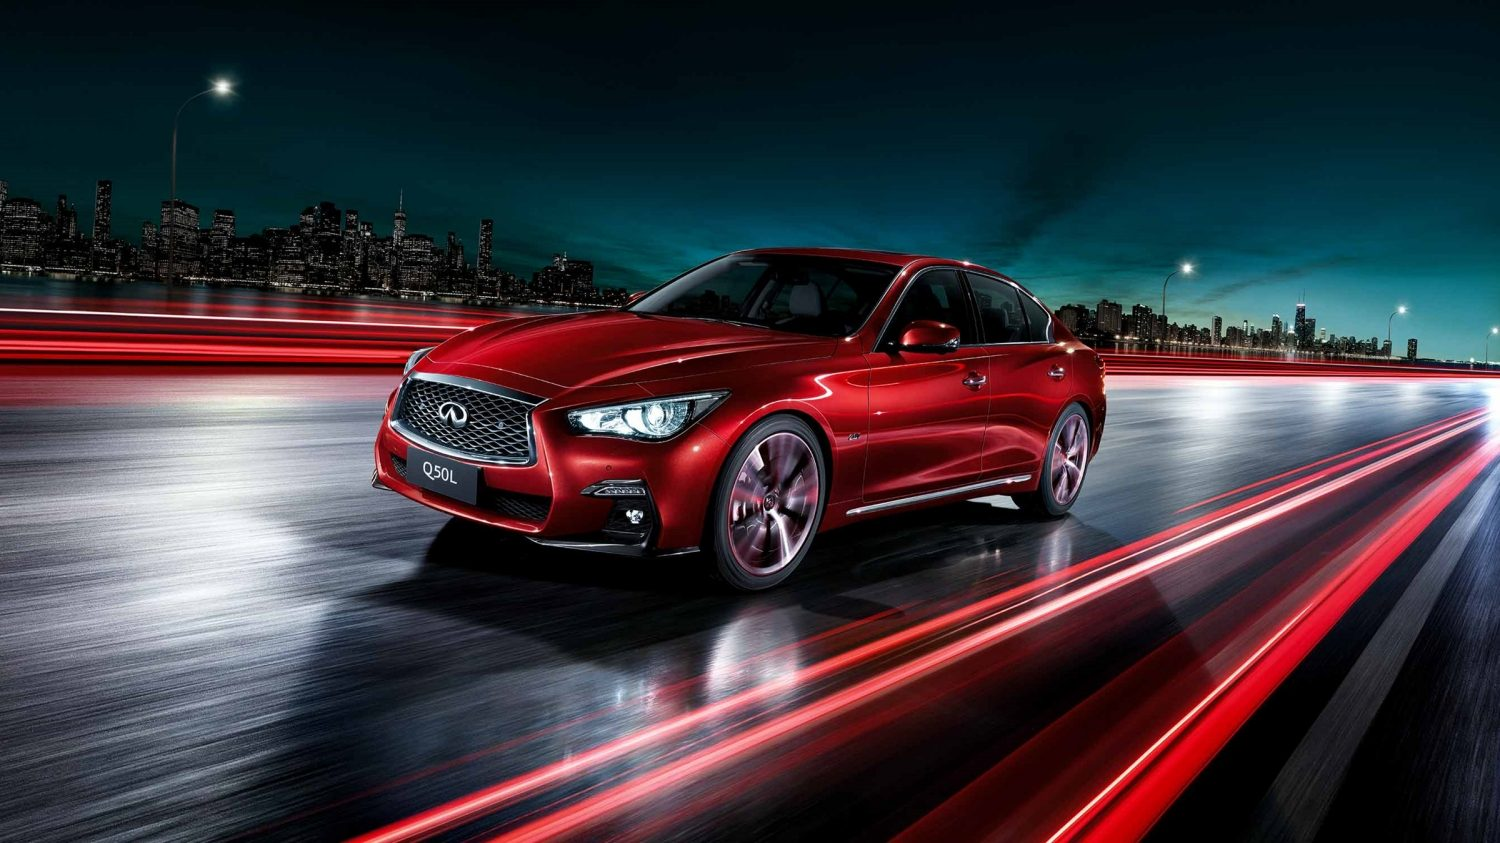 2018 INFINITI Q50 Red Sport Sedan in Dynamic Sunstone Red